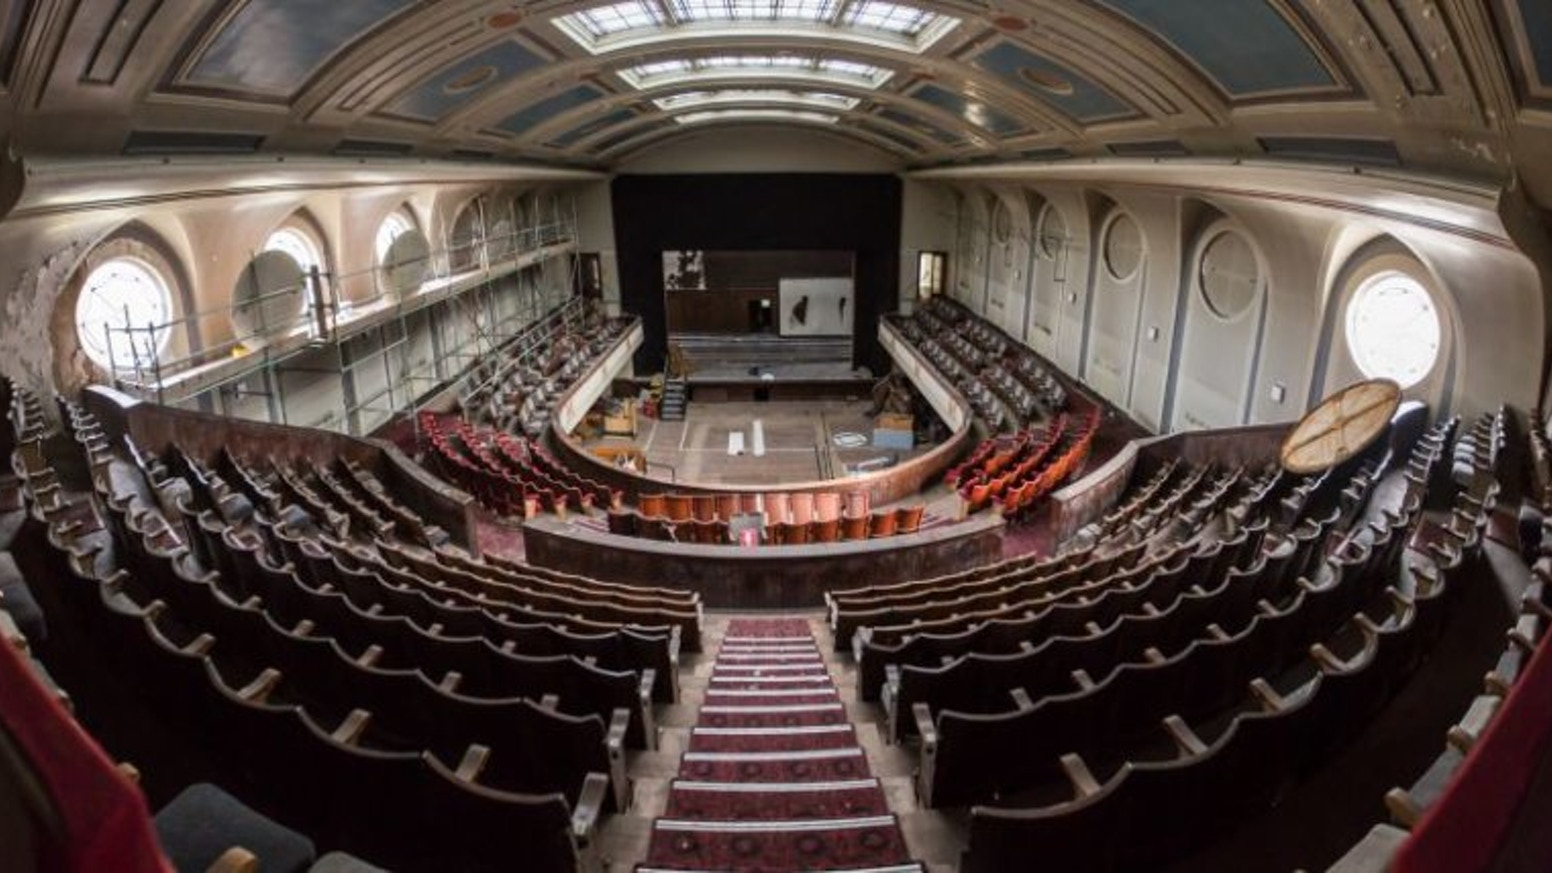 Helping create an inspiring arts & music venue for Edinburgh by restoring a stunning Art Deco theatre that's been derelict for 28 years